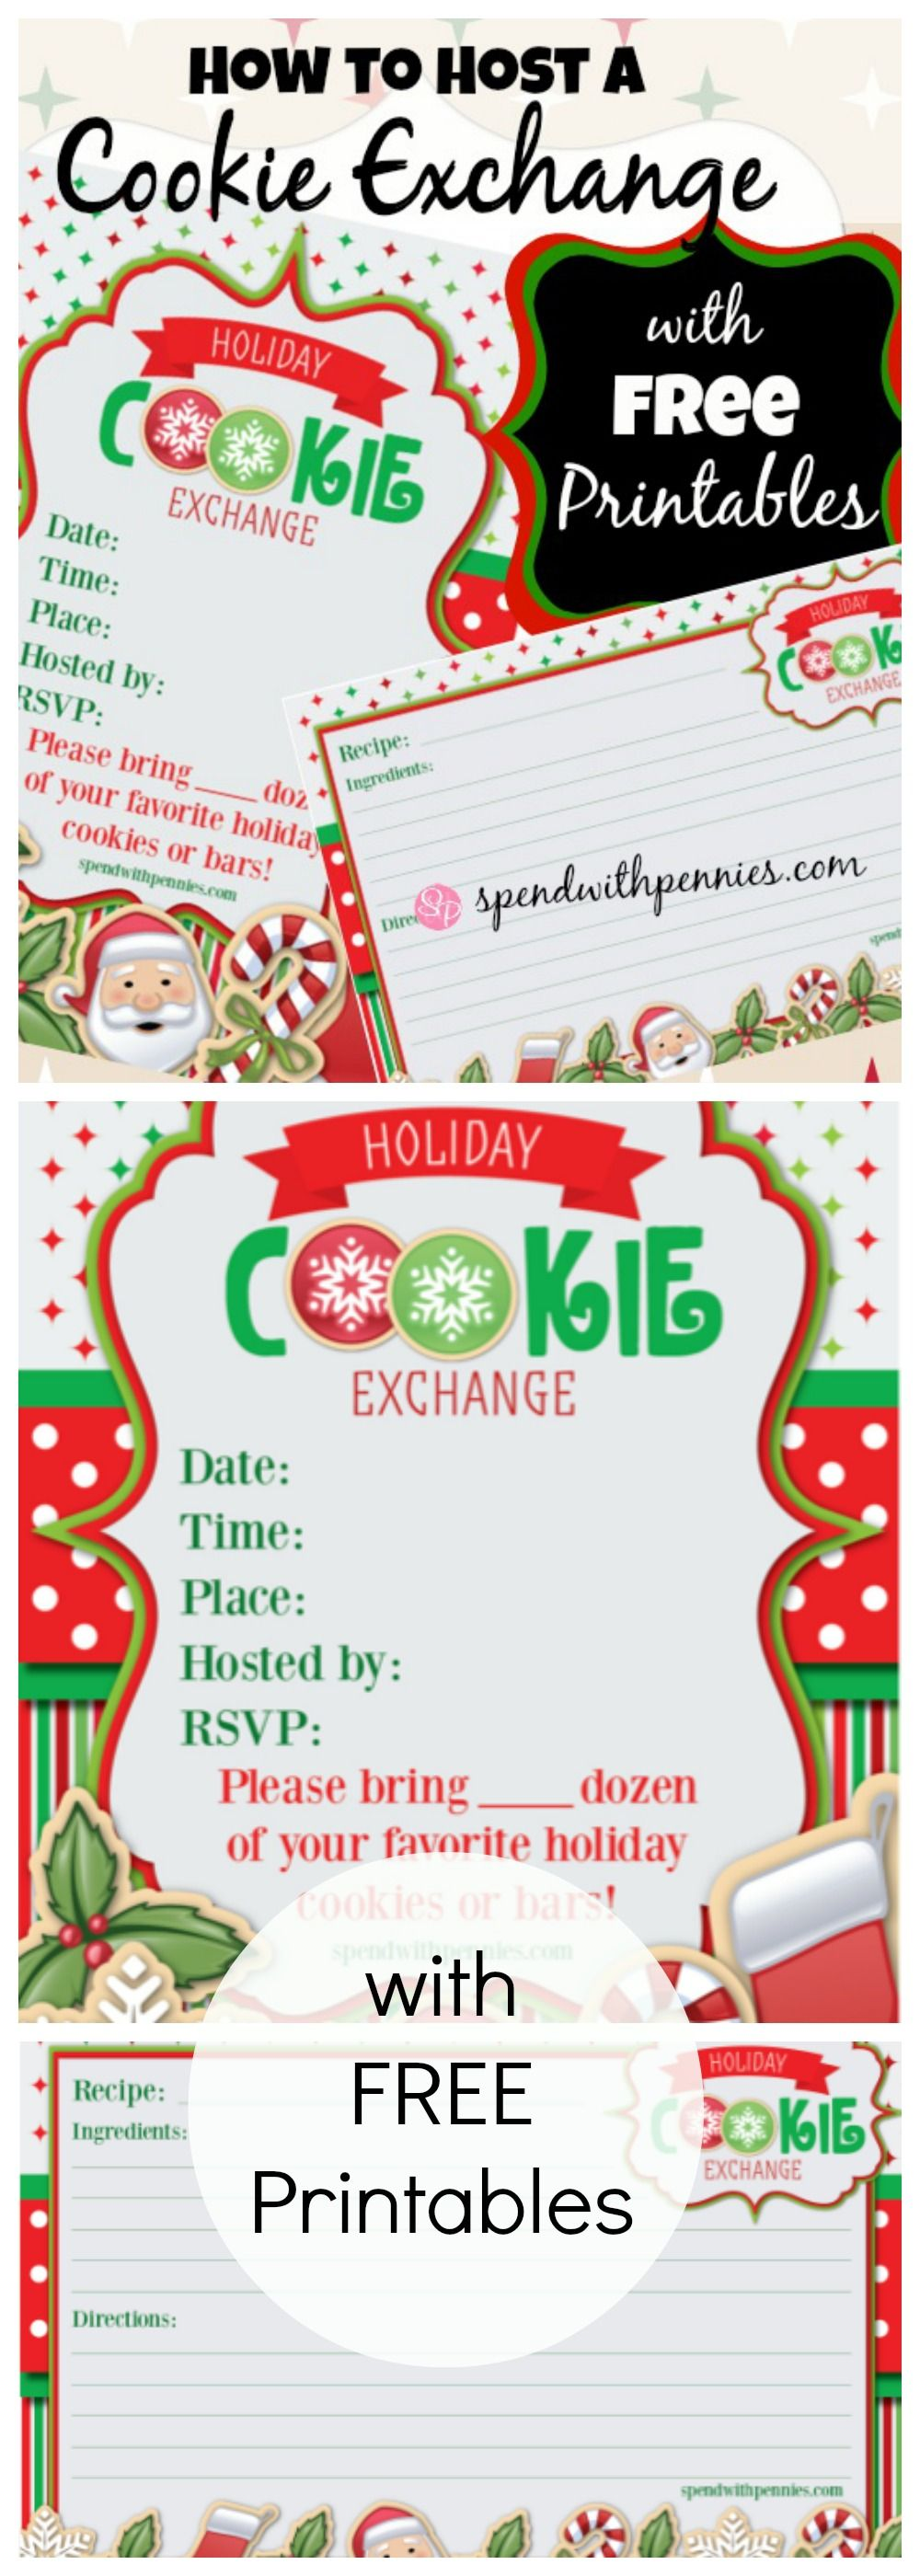 how to host a cookie exchange printable invitations and family christmas middot how to host a cookie exchange tips and printables <3 repin